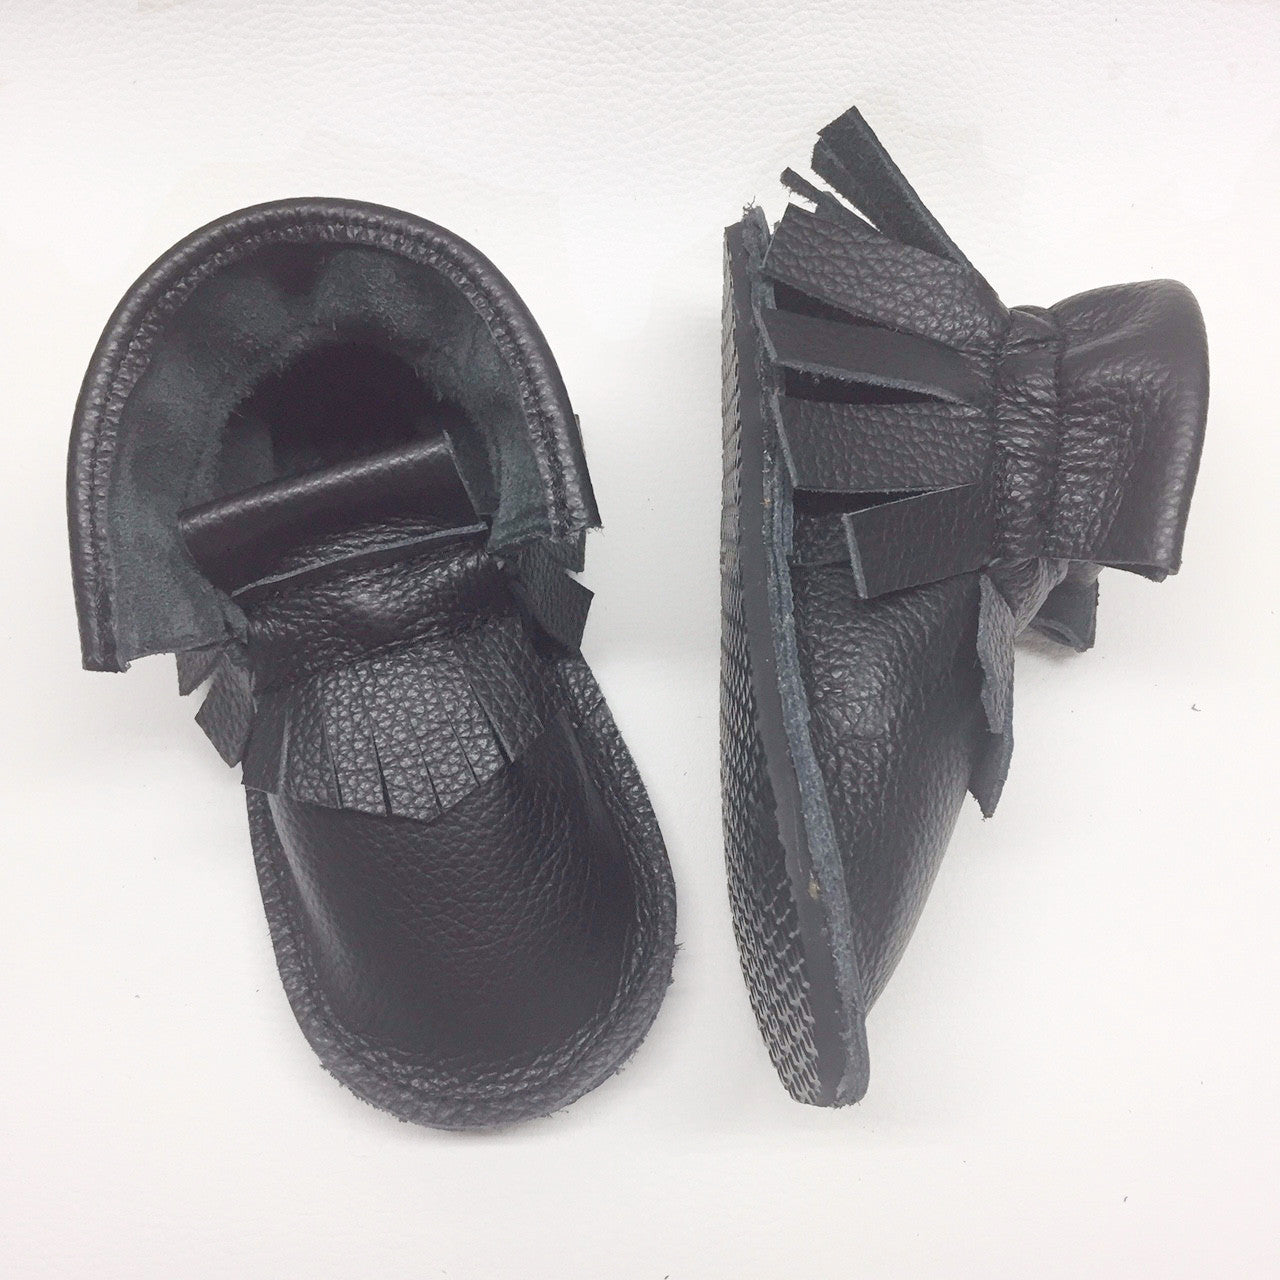 black genuine leather high top moccasins, mini boots with rubber or soft sole